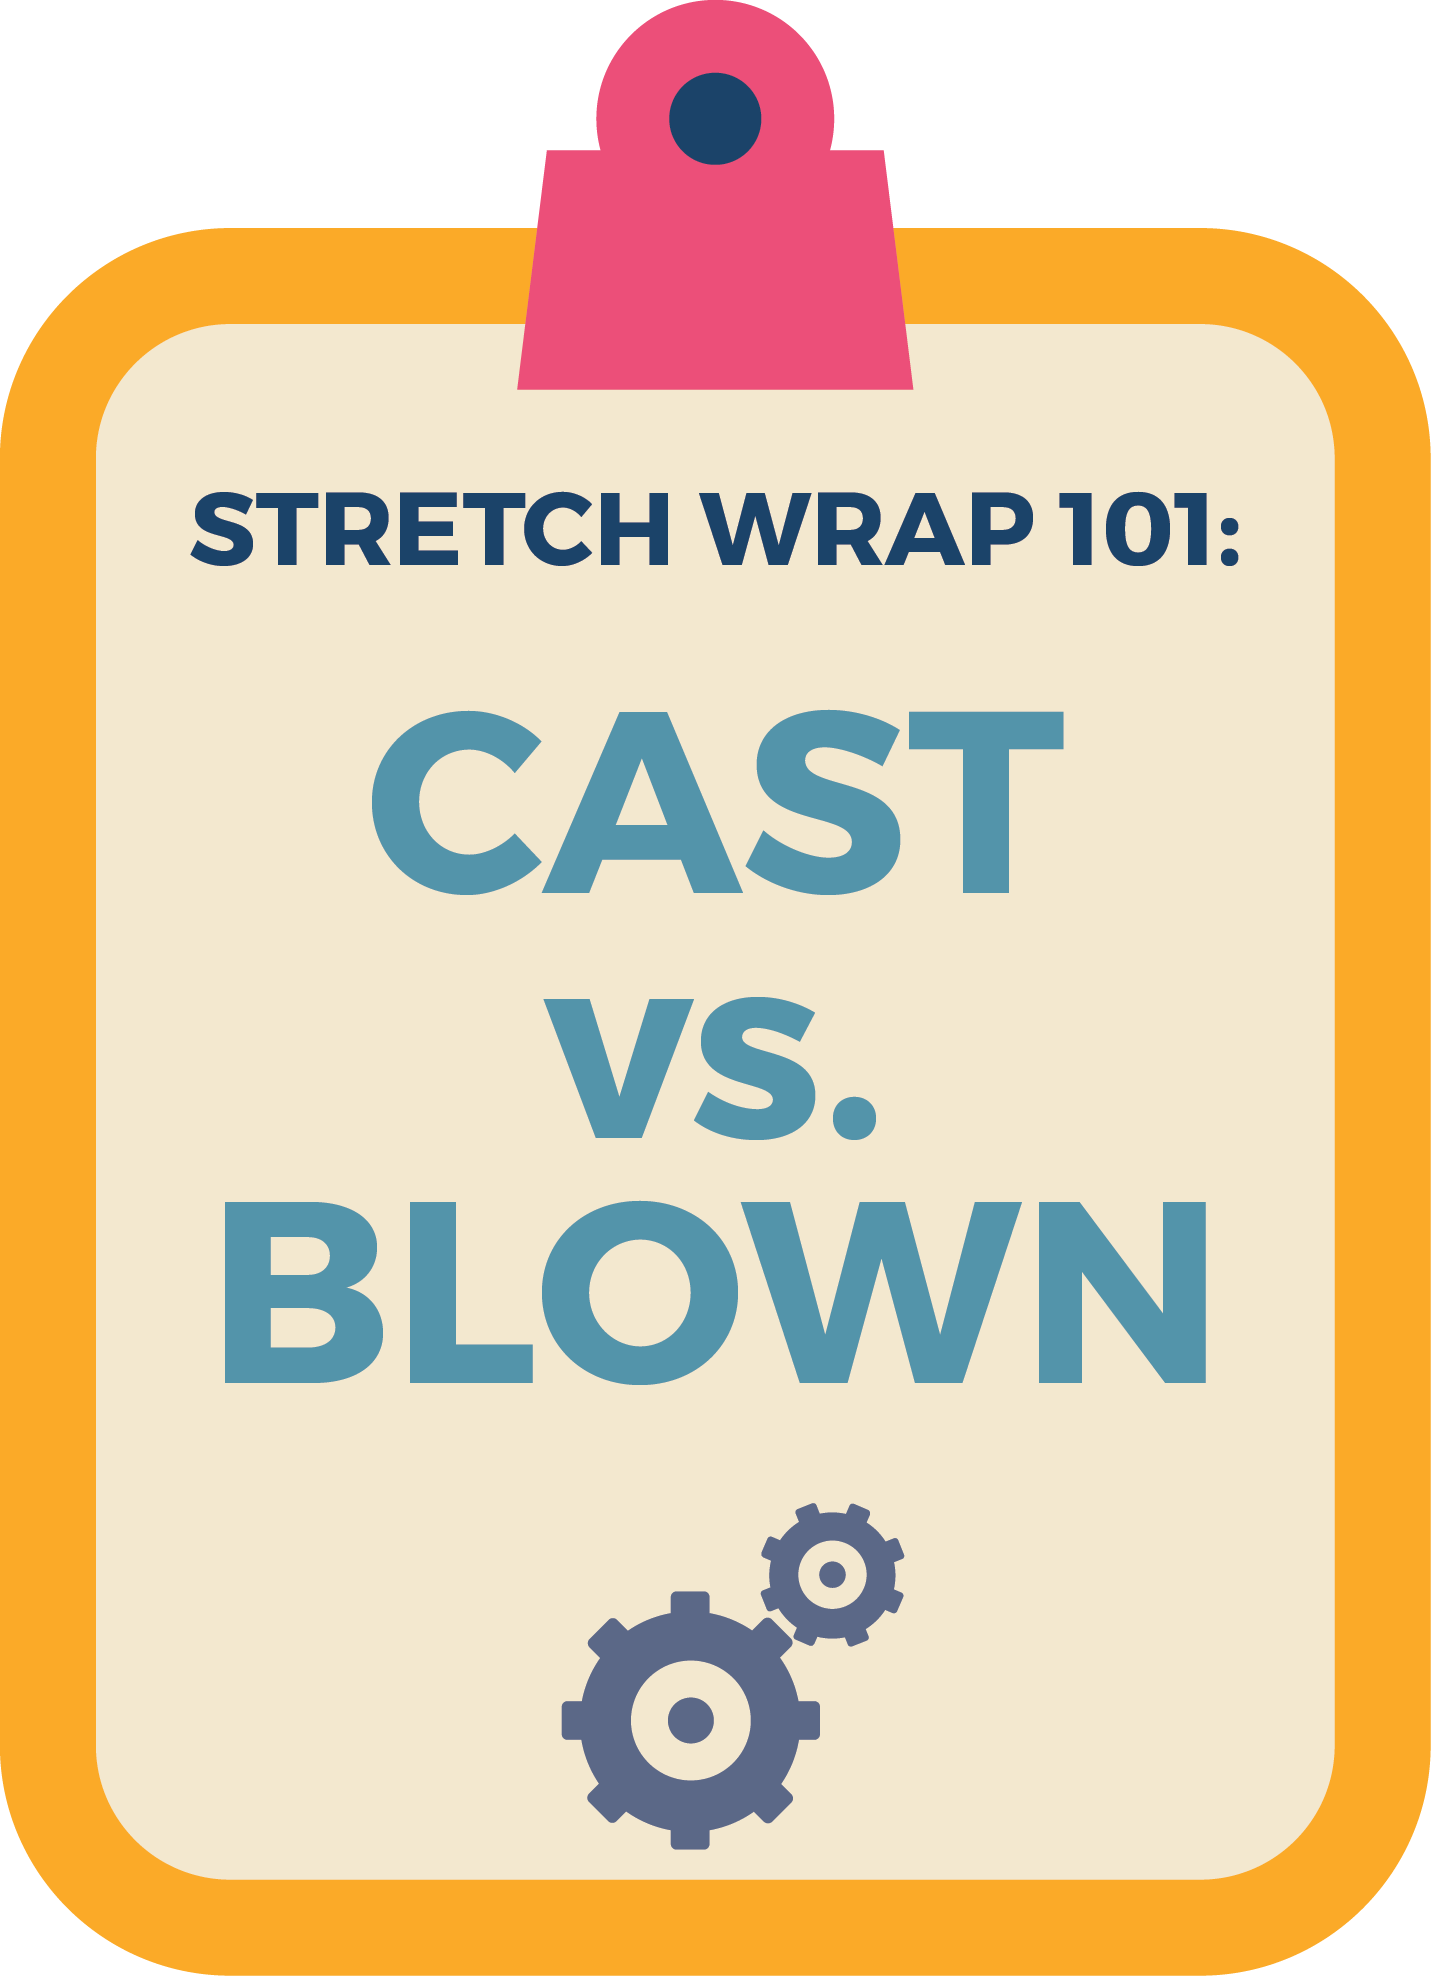 stretch-wrap-101-cast-blown-wrap